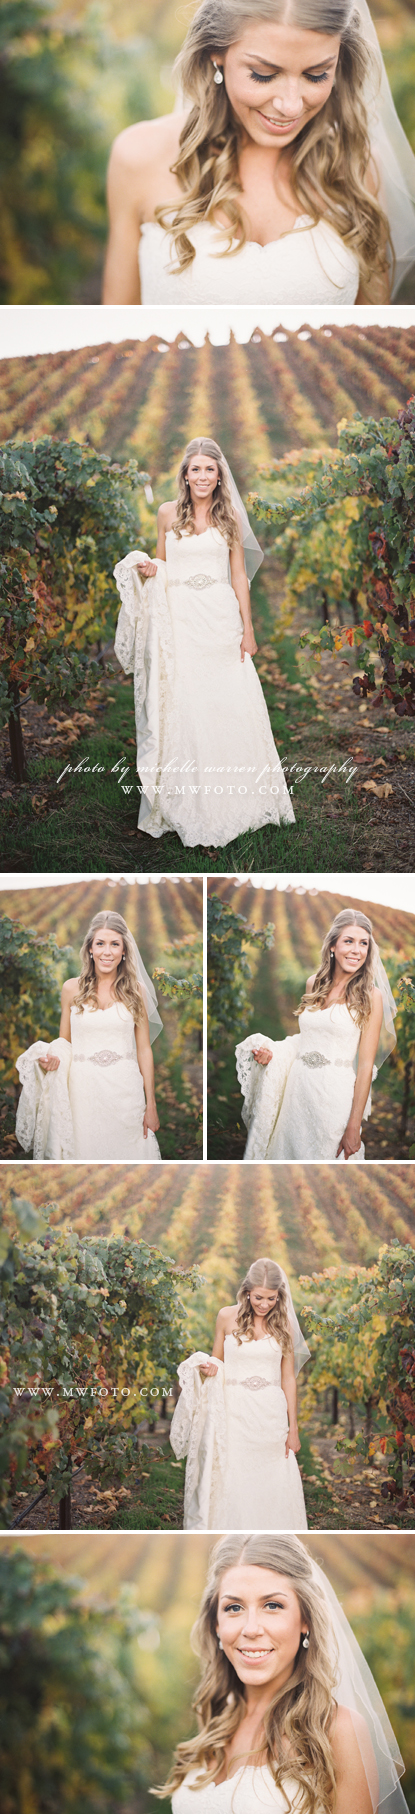 Vineyard Wedding Bridal Portraits